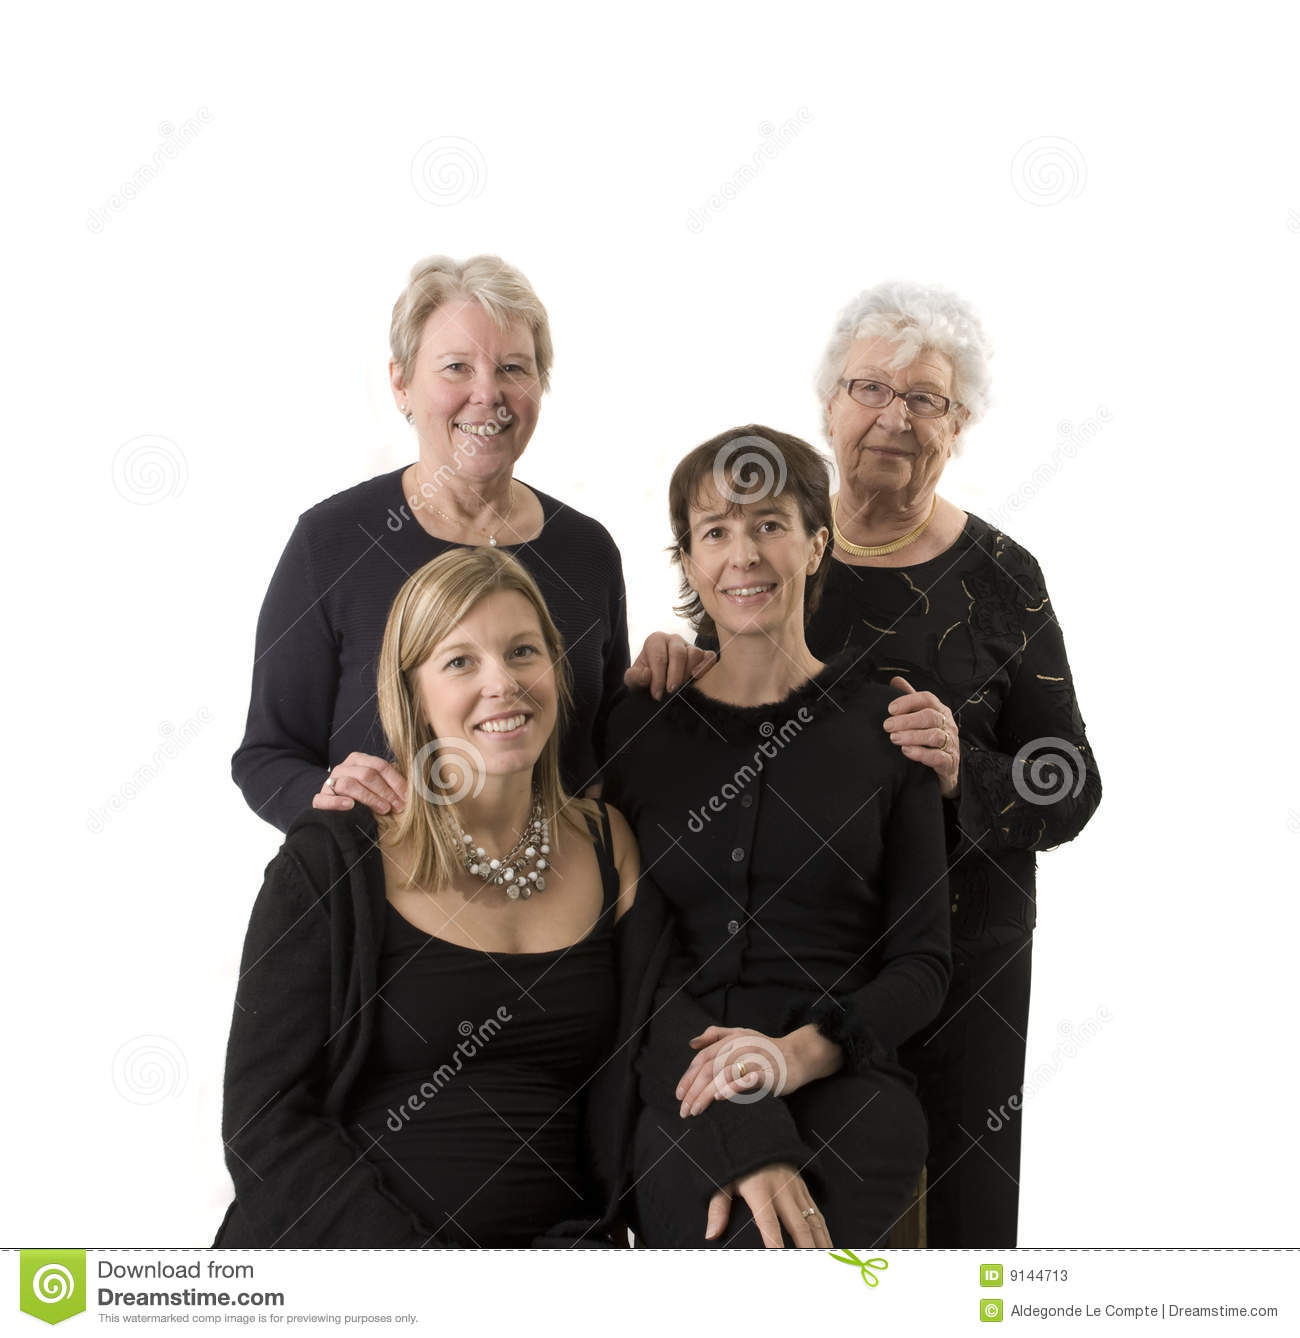 Family portrait compose of 4 women